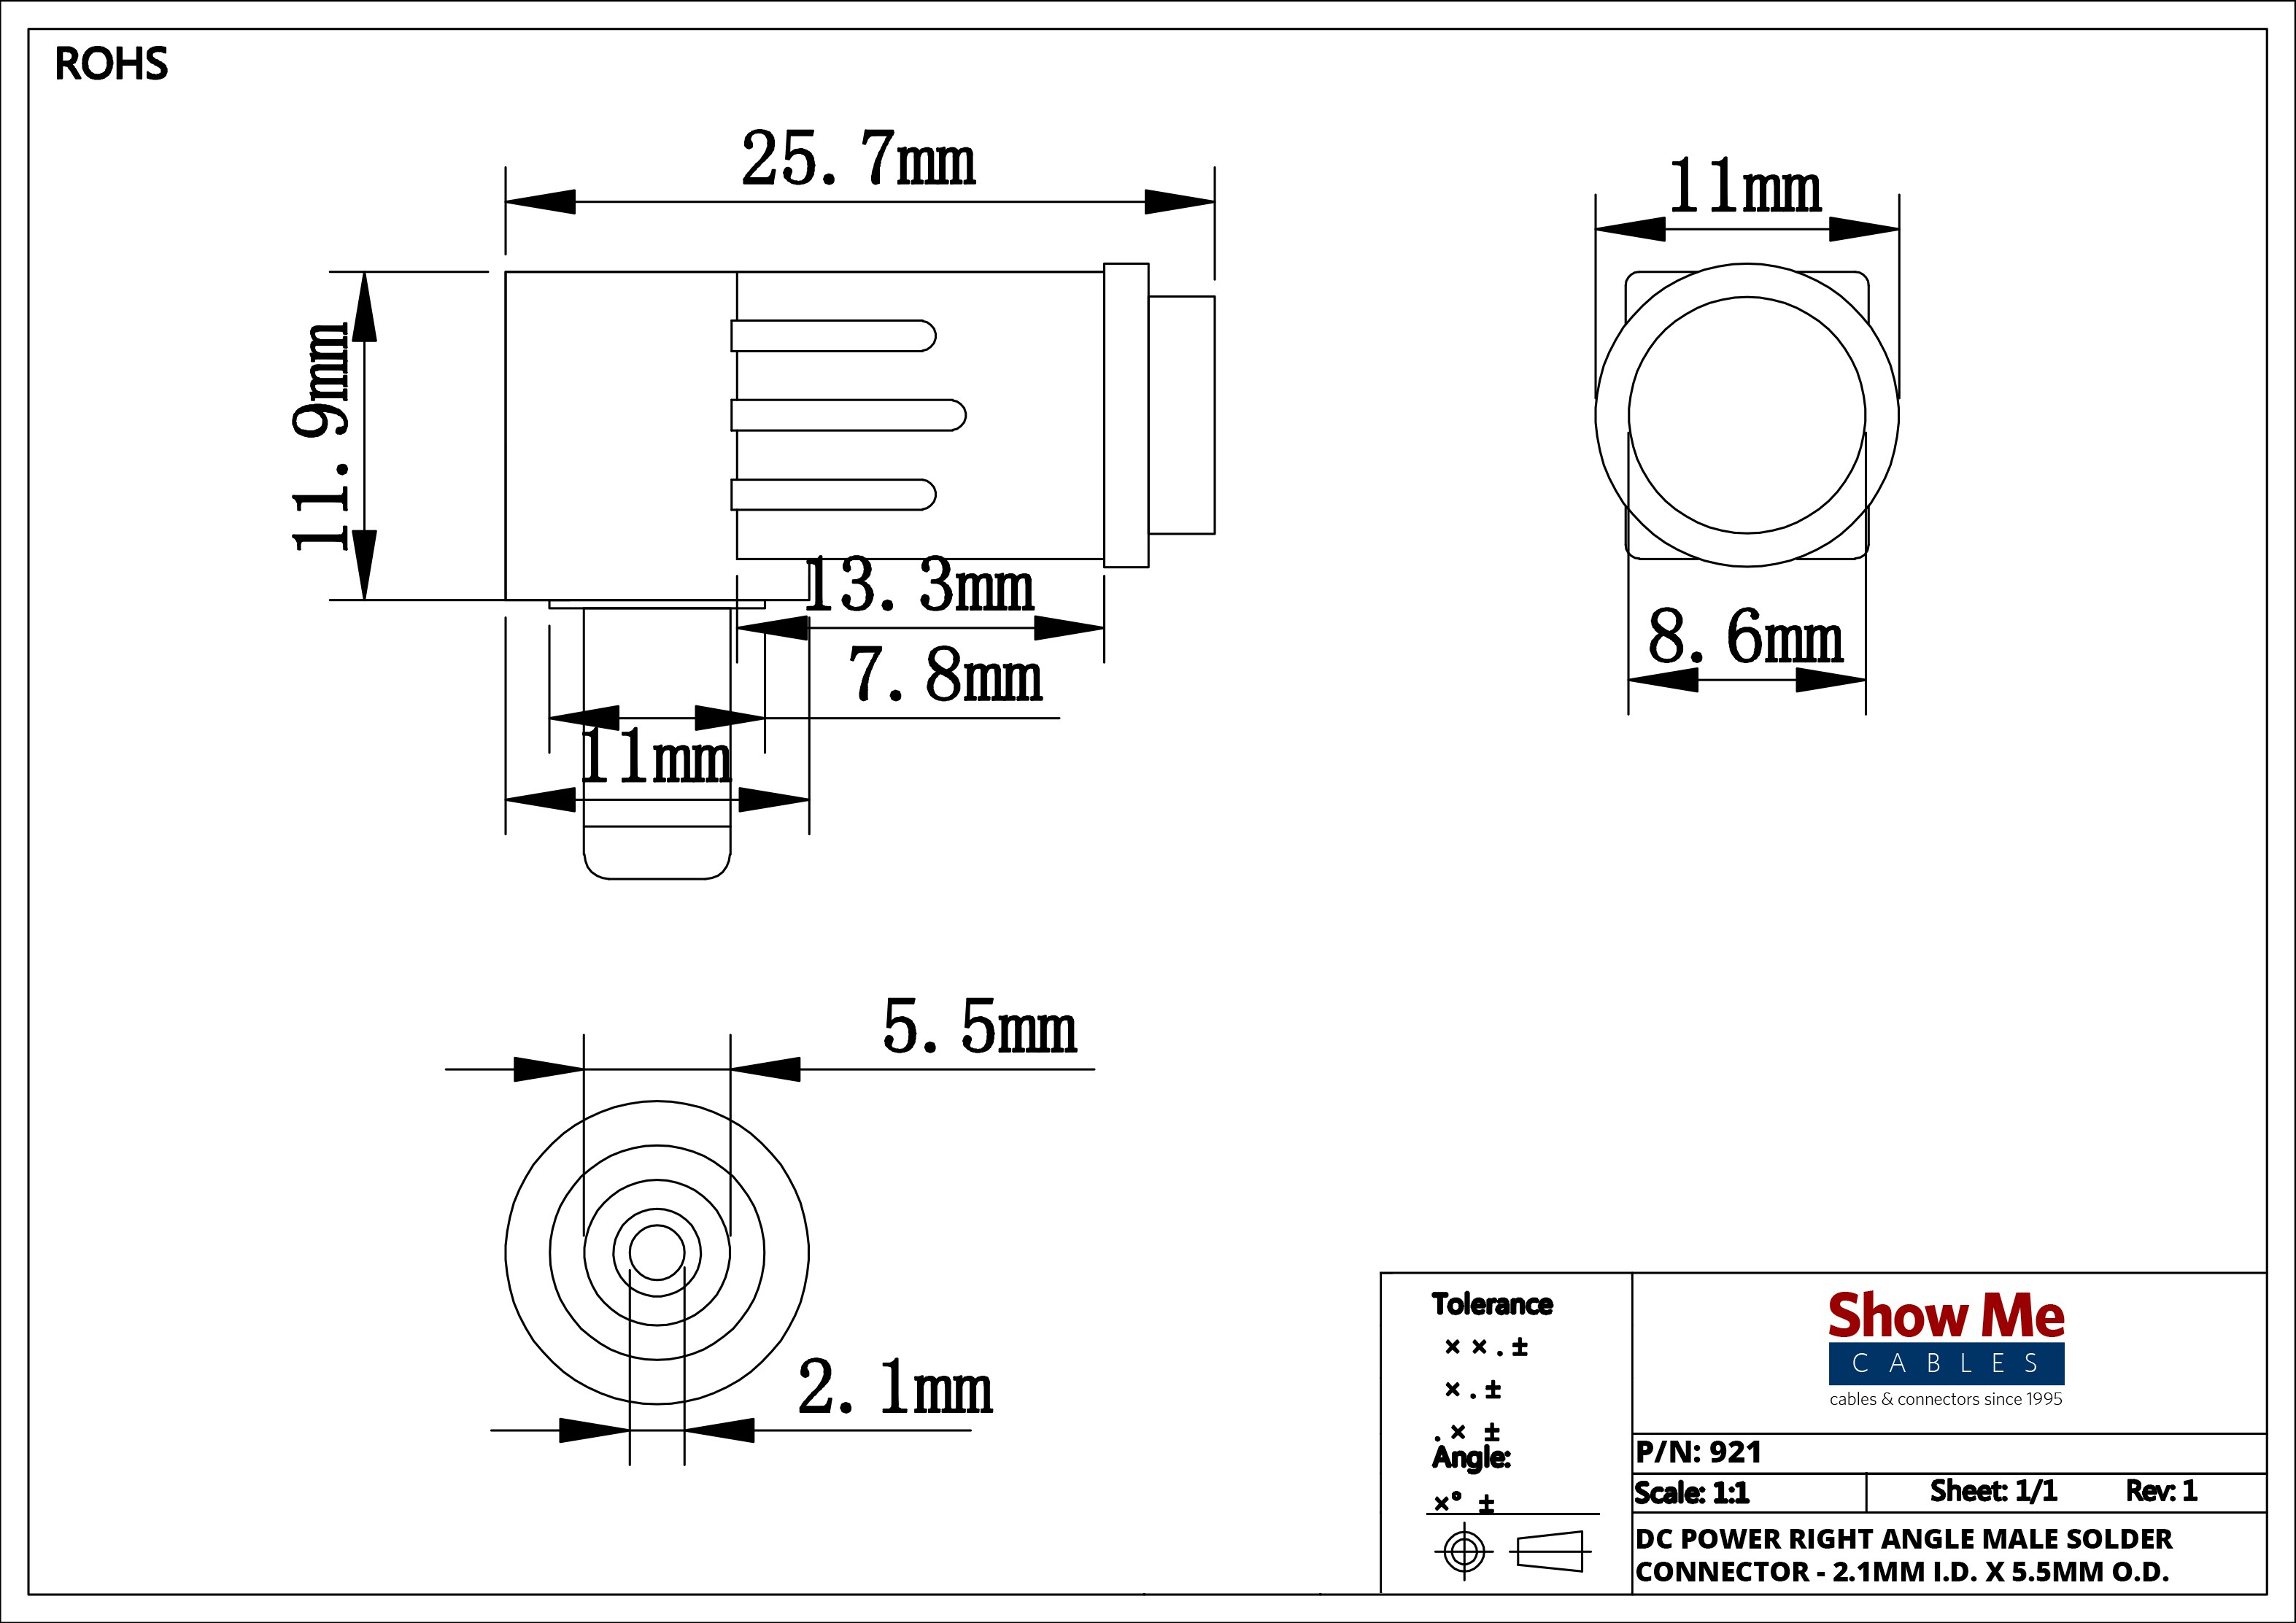 cat 5 wiring diagram rca wall jack elements of communication download